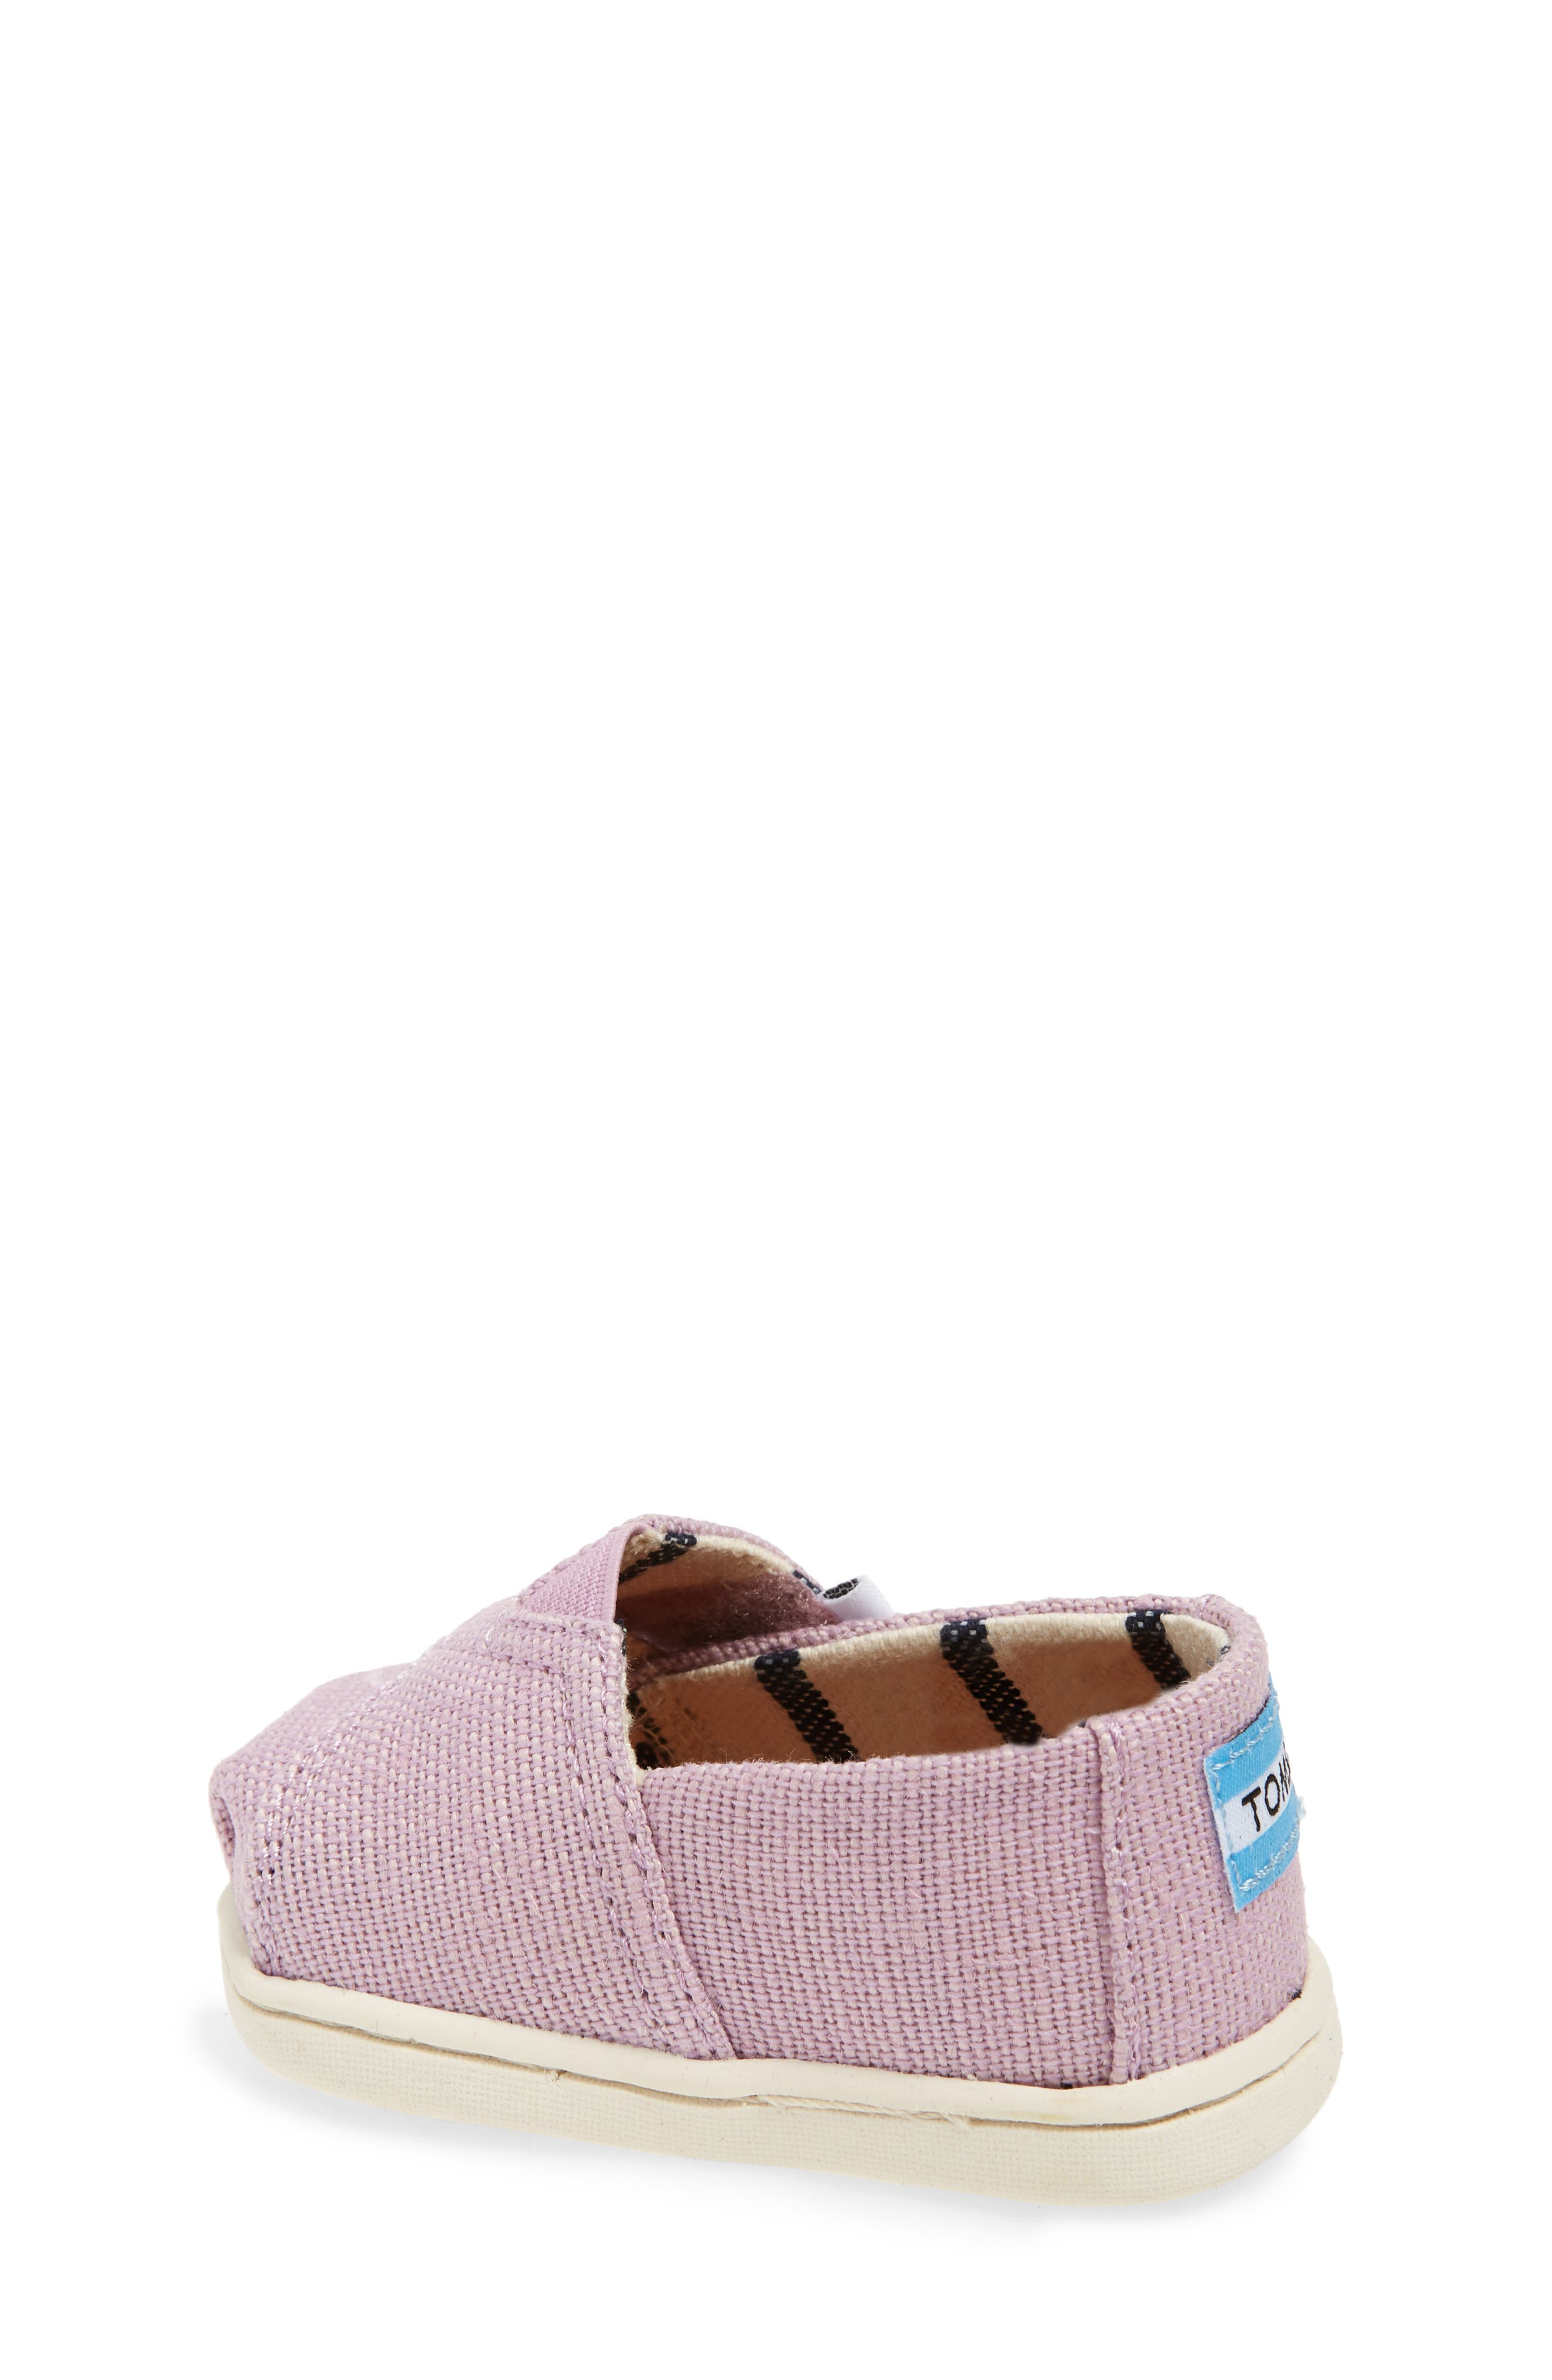 Heritage Canvas Slip-On,                             Alternate thumbnail 2, color,                             SOFT LILAC HERITAGE CANVAS